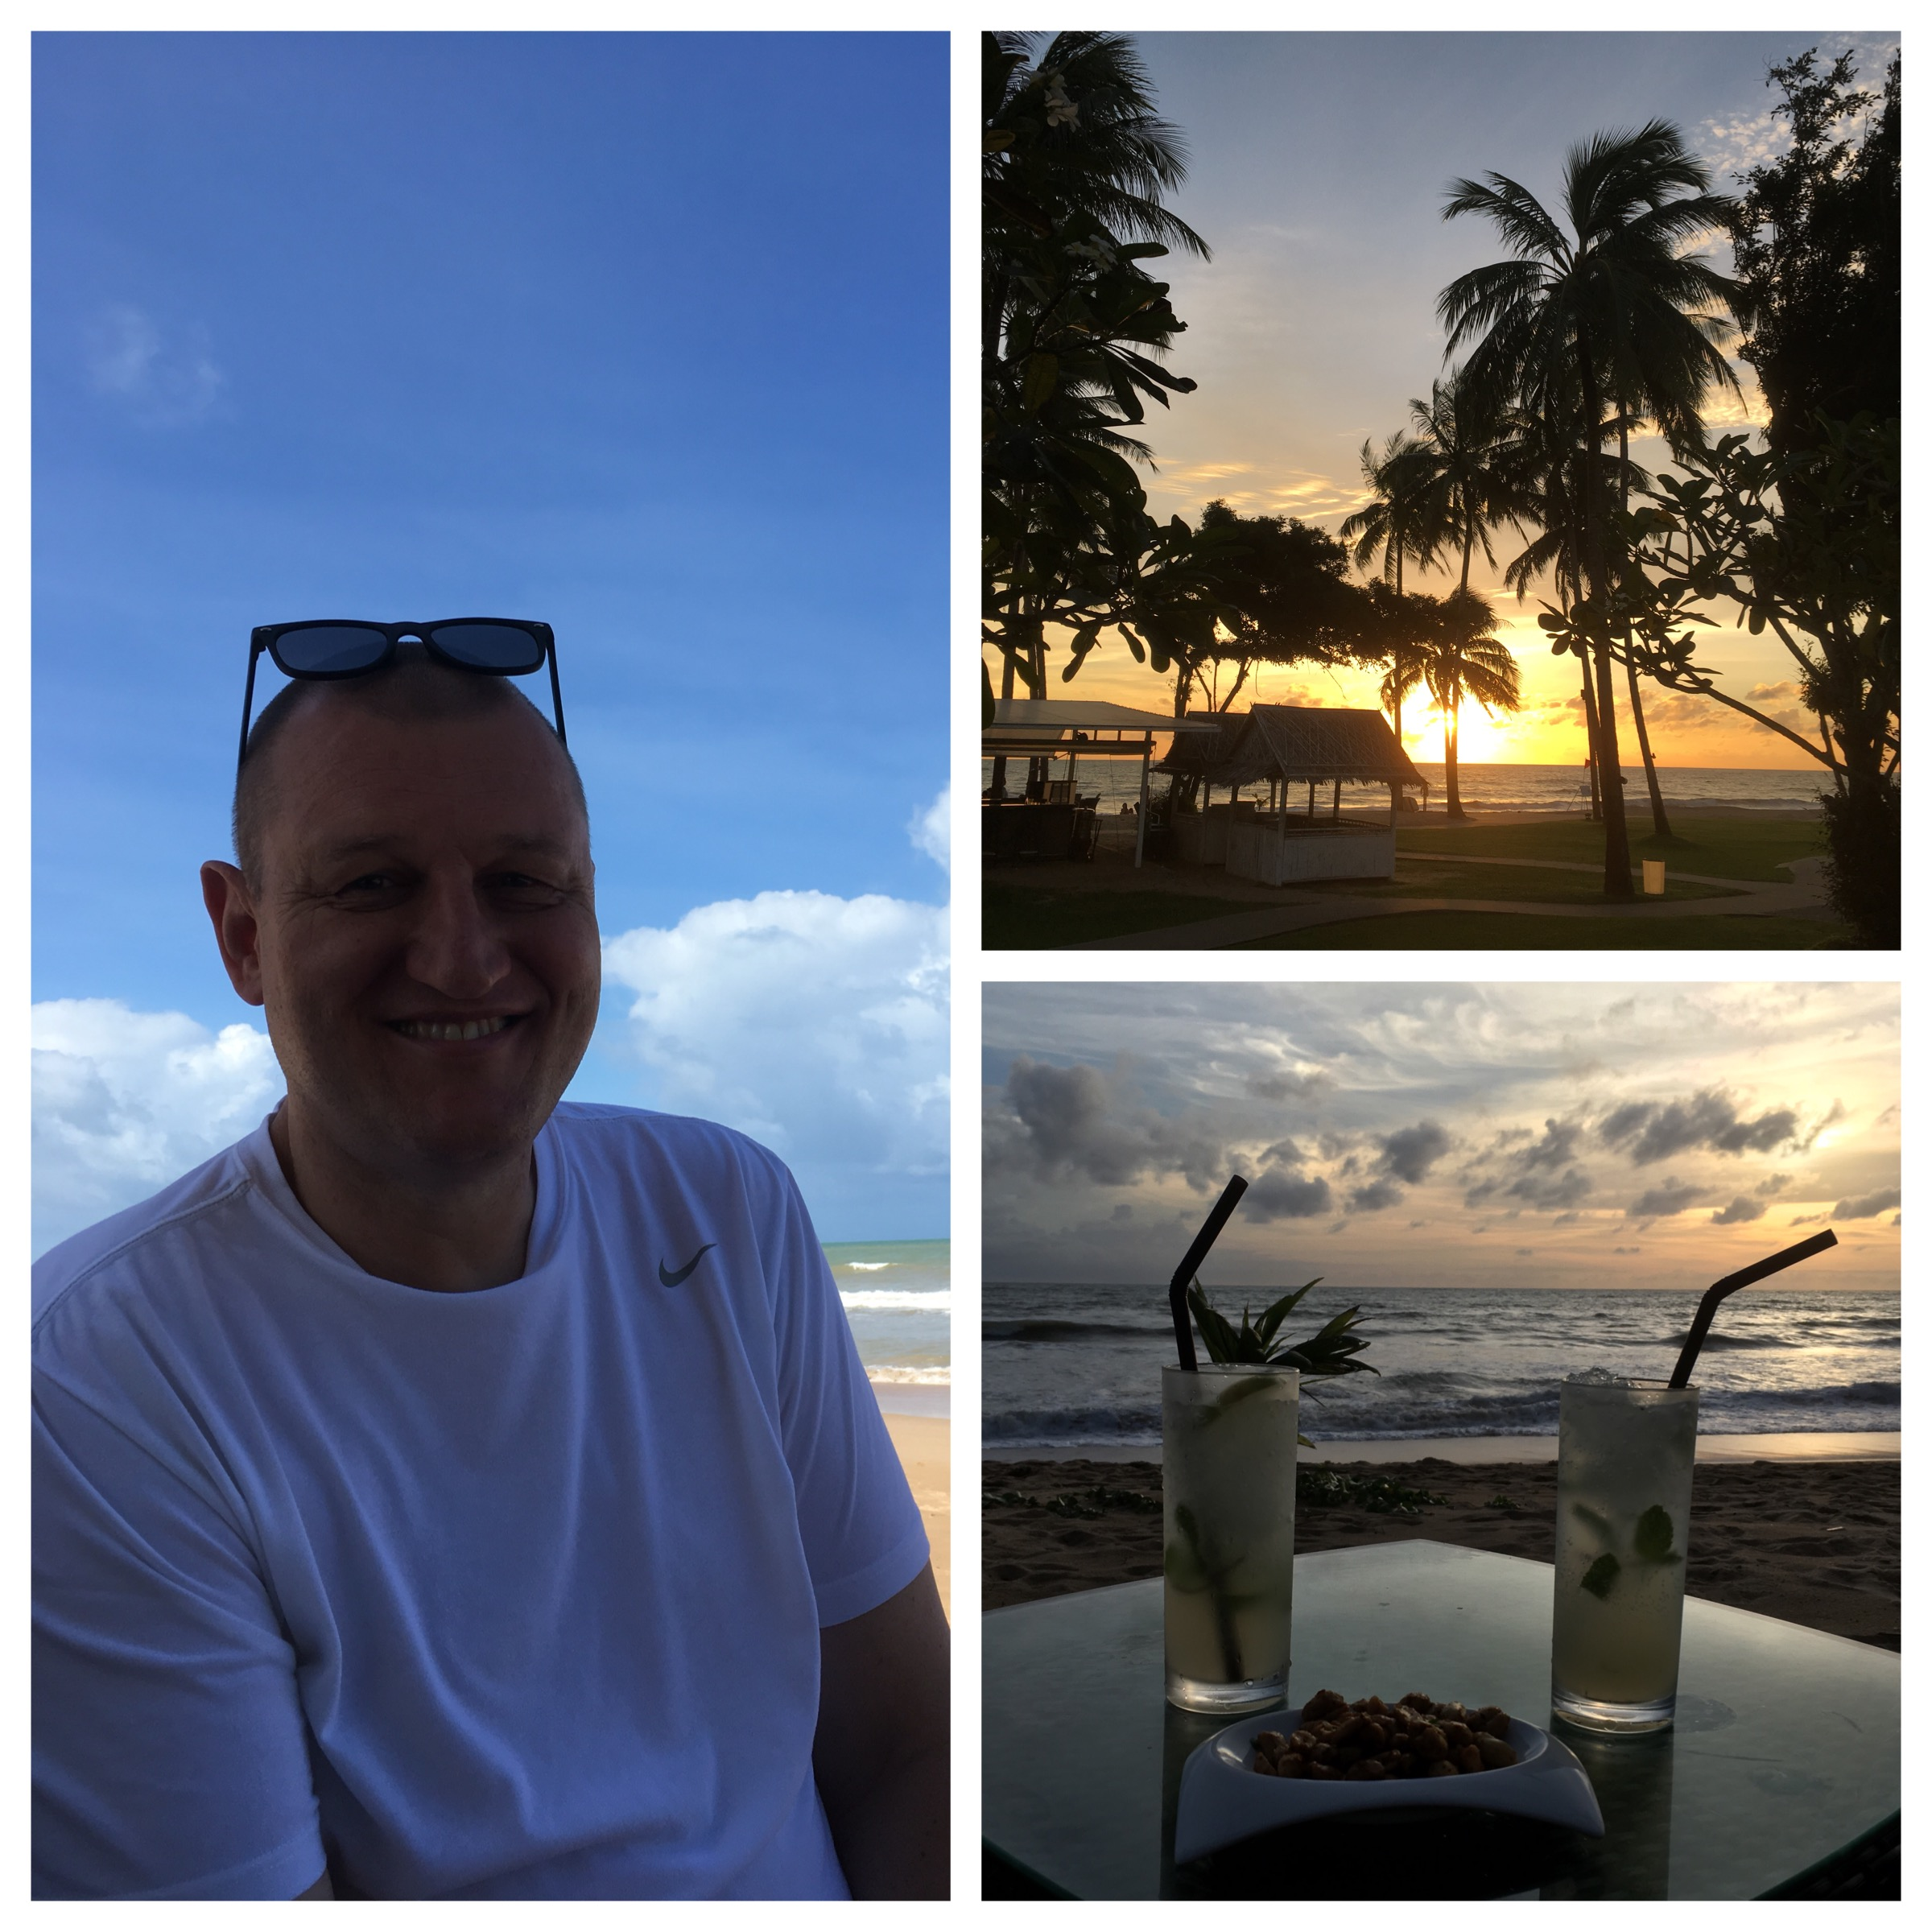 The birthday boy, enjoying sunsets each evening... with drinks of course :o)